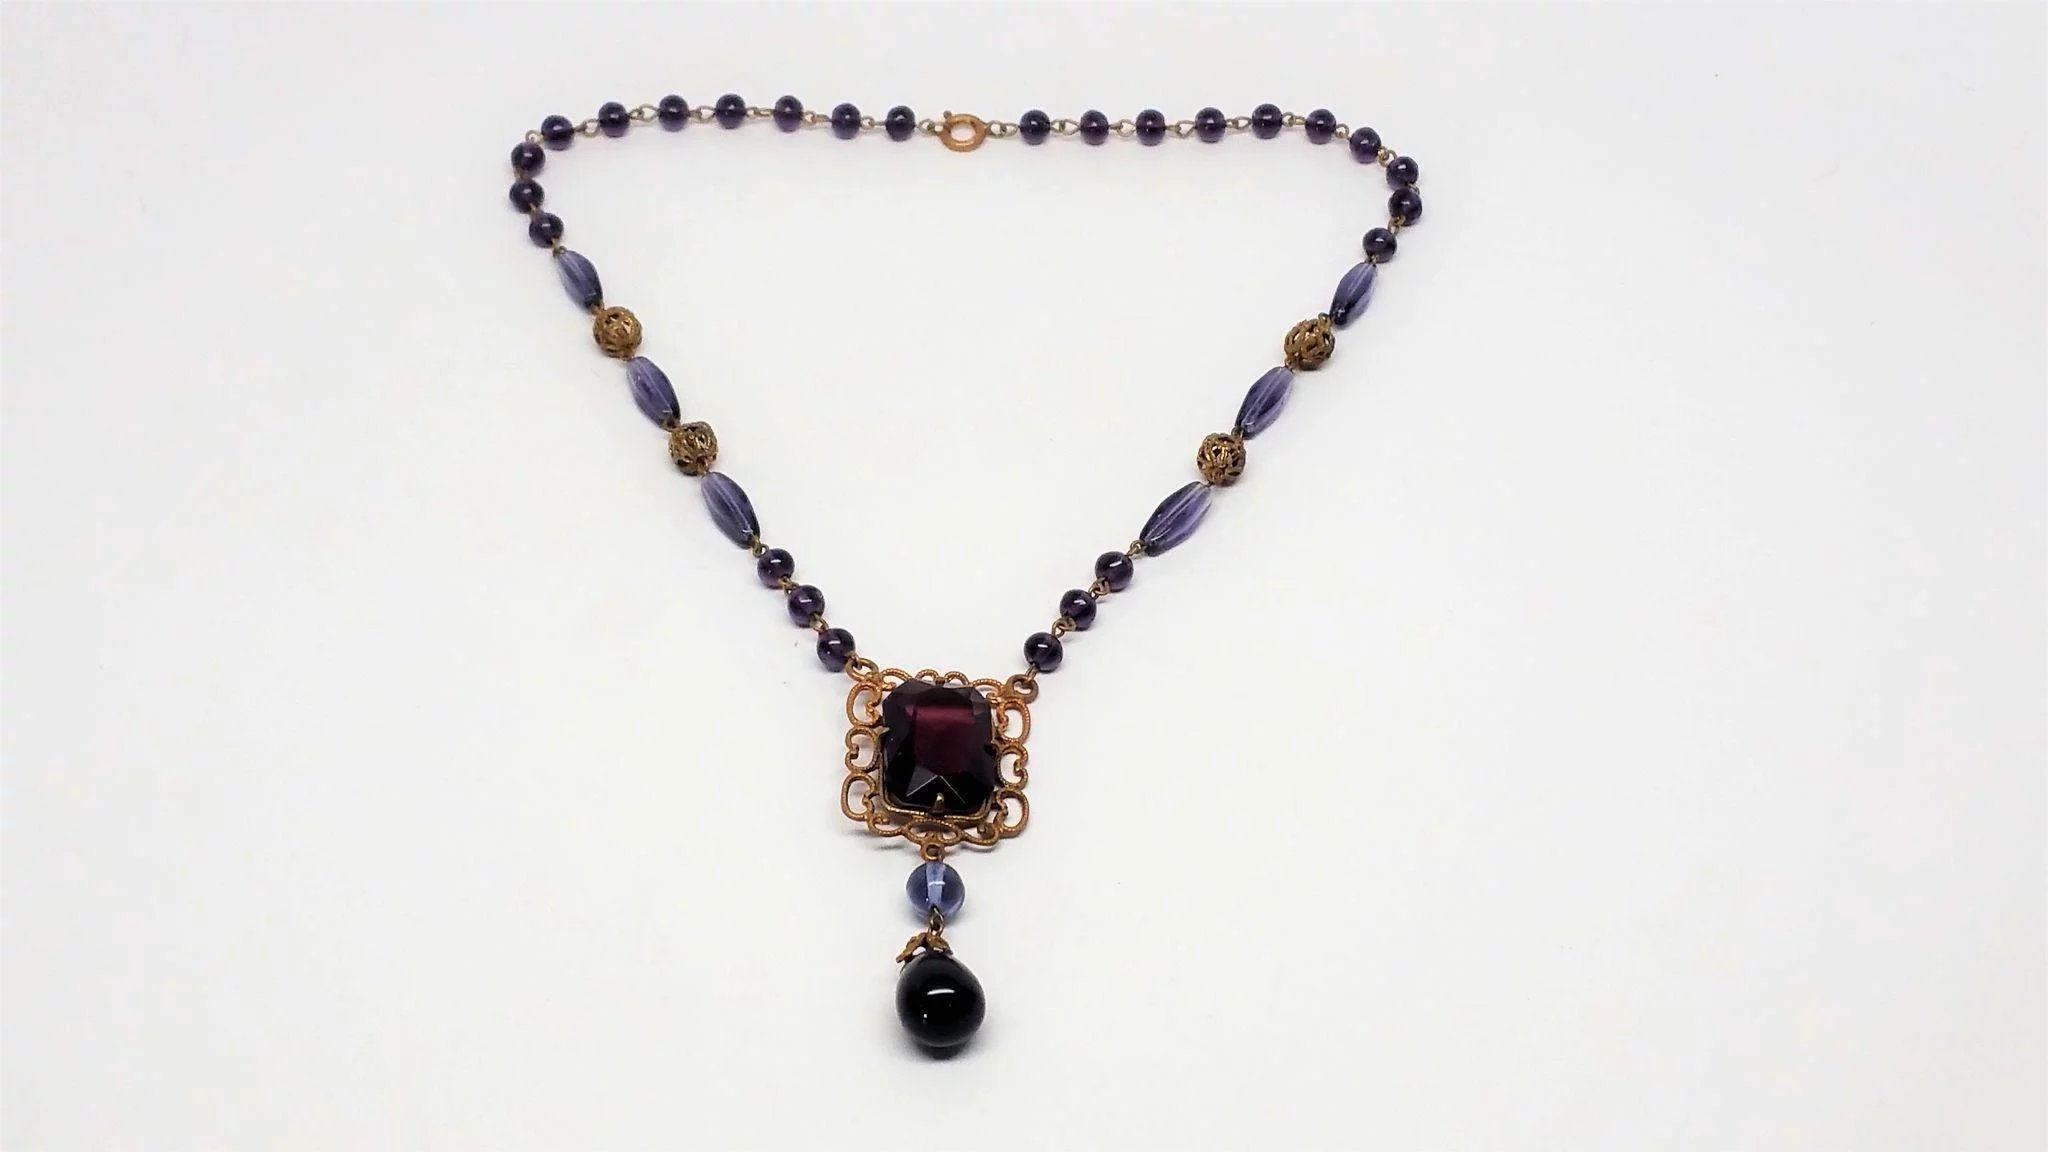 1920s to 30s purple Glass necklace : Vintage Glitz and